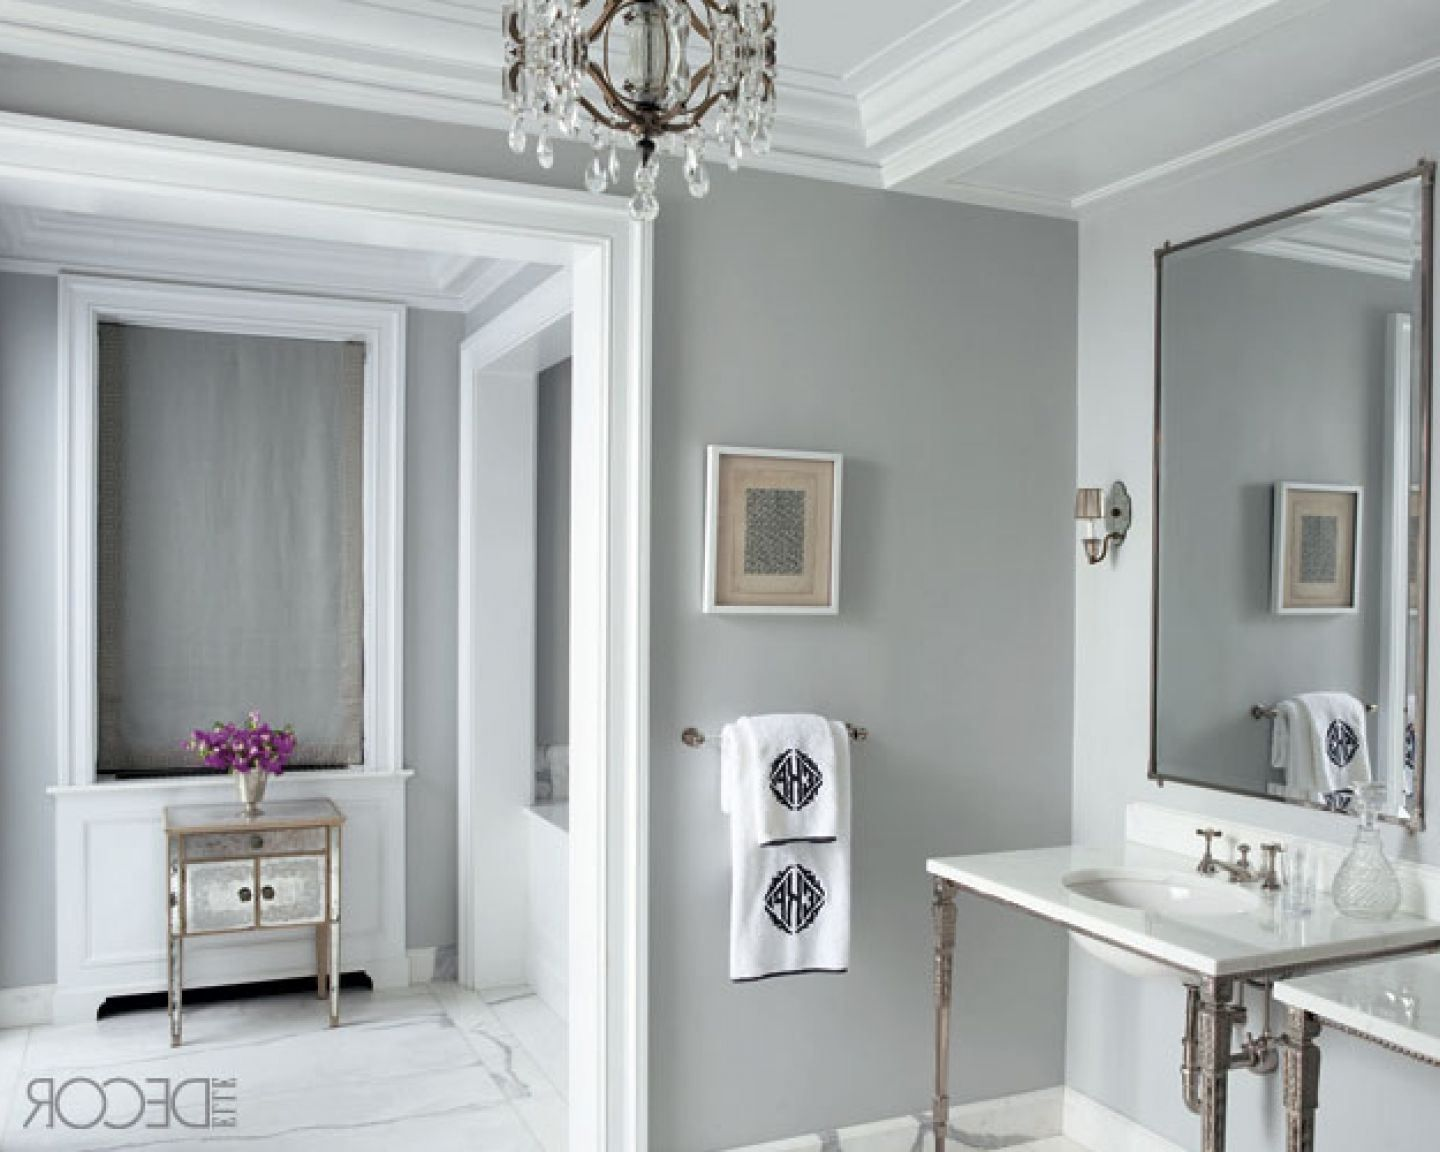 Decoration Good Combination White And Gray Popular Bathroom Paint Colors Minimalist Vanity With Mirror Best Warm Grey Color Ideas For Wall